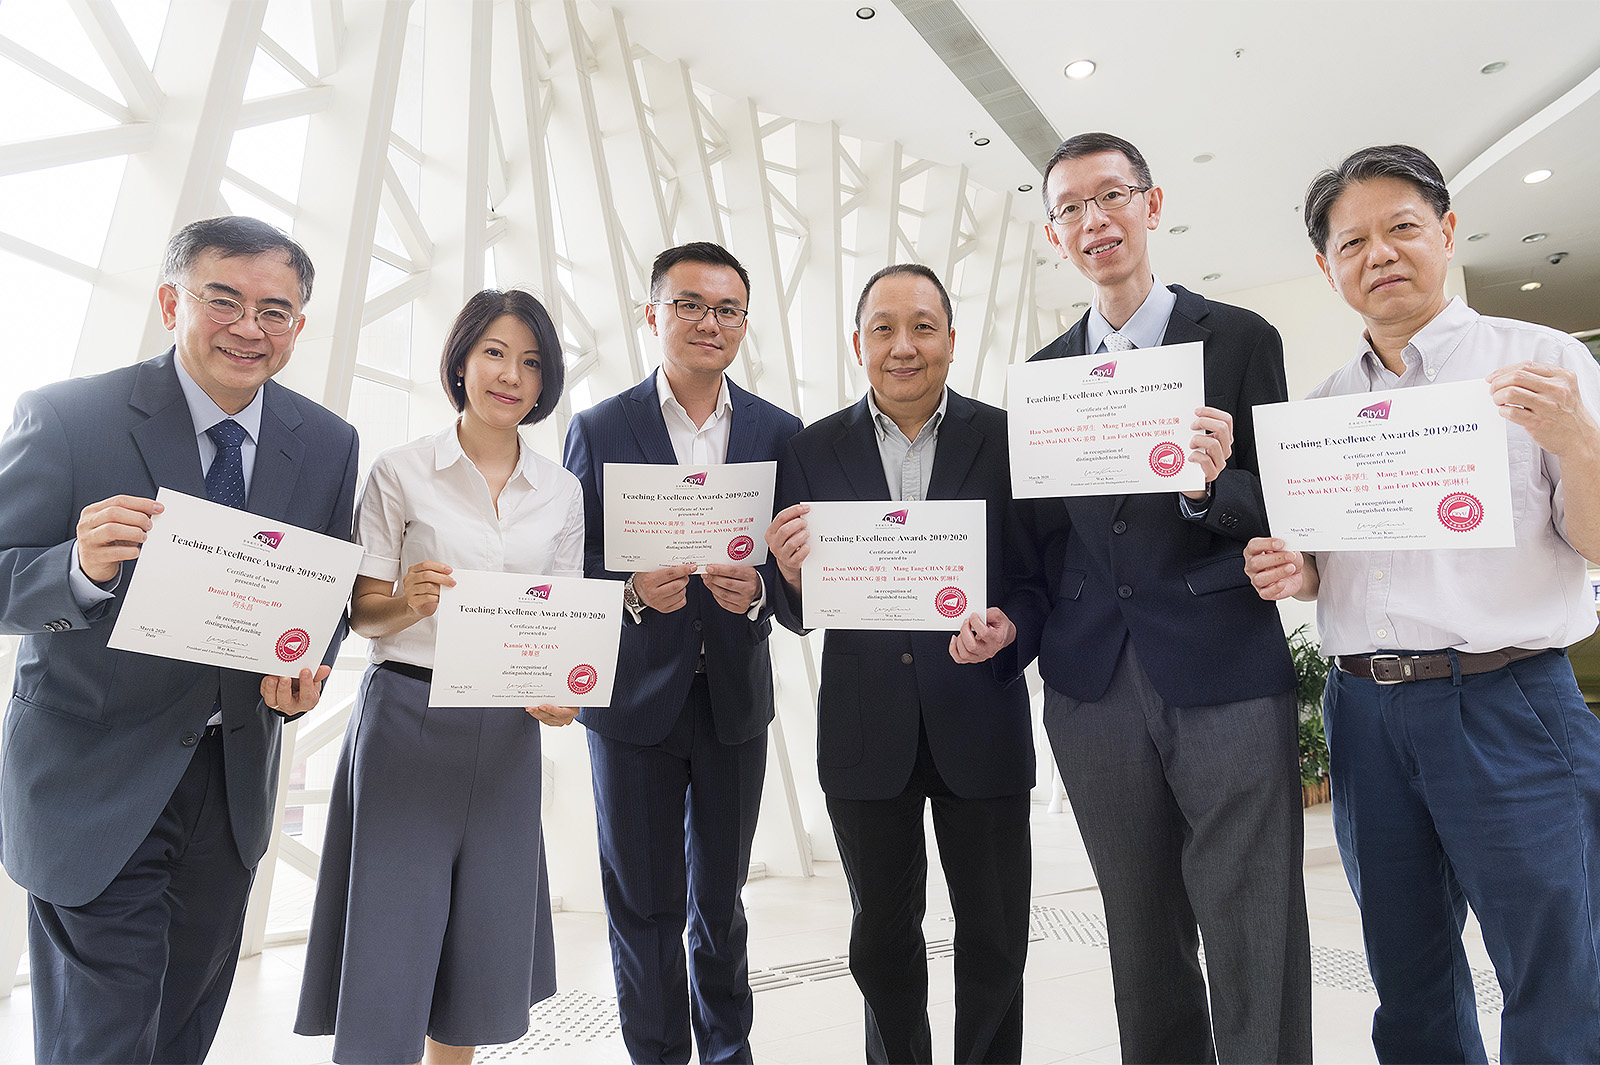 TEA winners at CityU (from left): Professor Daniel Ho Wing-cheong, Dr Kannie Chan Wai-yan, and the IT Professional Placement Team comprising Dr Jacky Keung Wai, Dr Chan Mang-tang, Dr Raymond Wong Hau-san and Dr Kwok Lam-for.